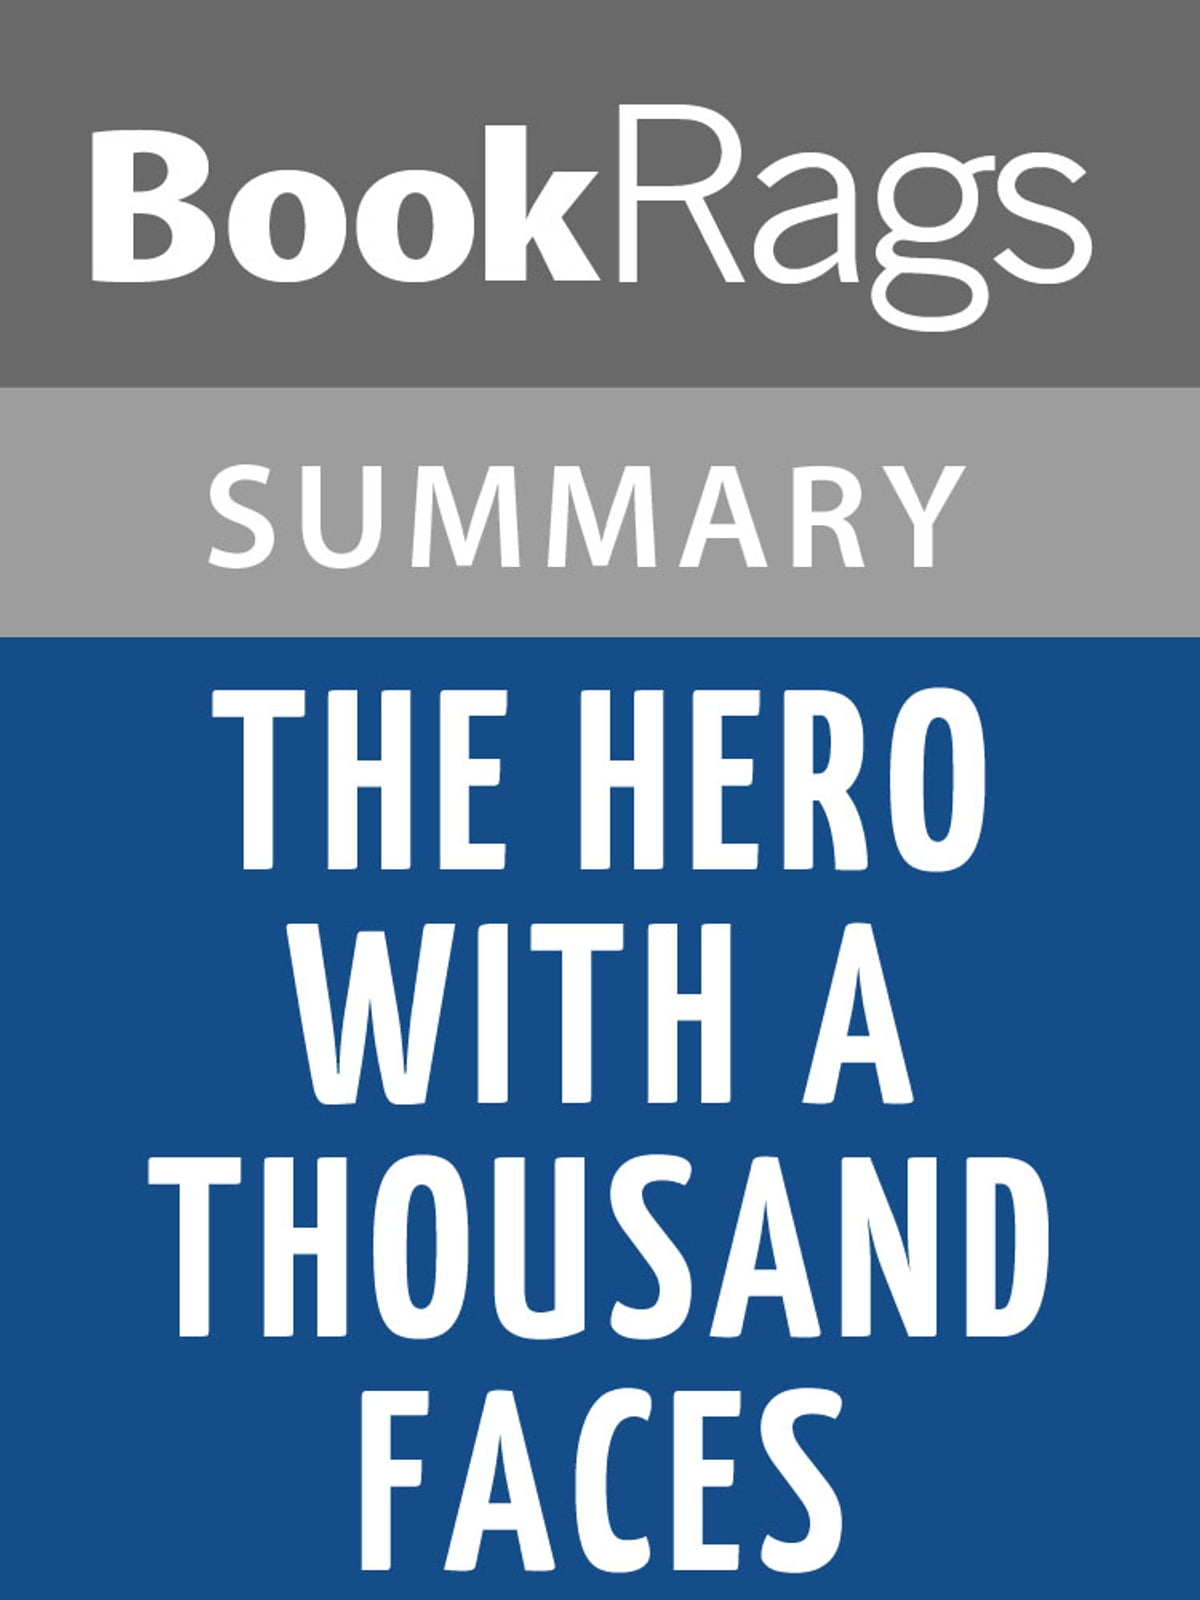 The power of myth ebook by joseph campbell 9780307794727 rakuten the hero with a thousand faces by joseph campbell summary study guide ebook by fandeluxe Gallery